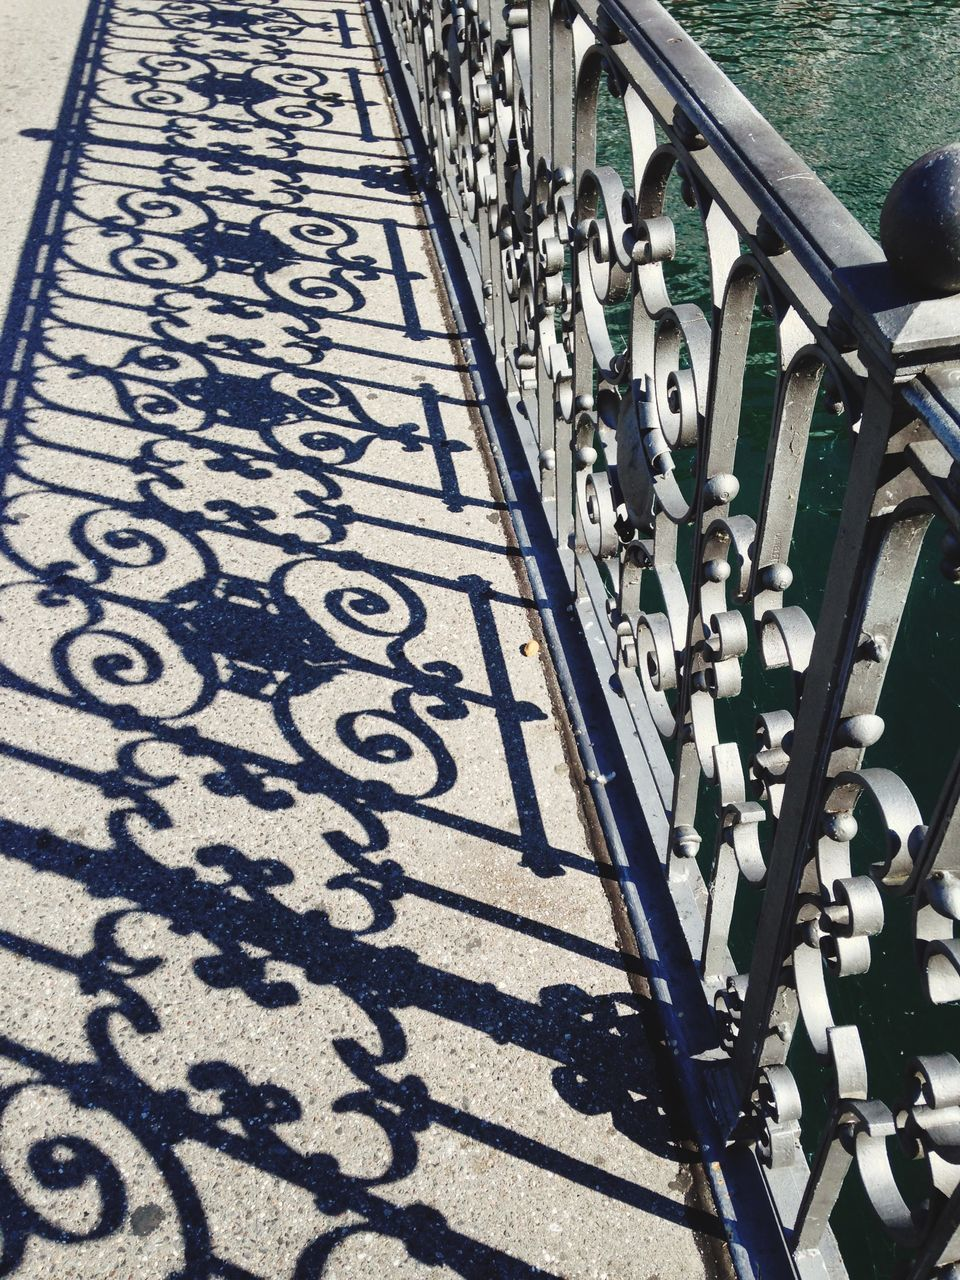 railing, high angle view, shadow, sunlight, day, outdoors, no people, hand rail, close-up